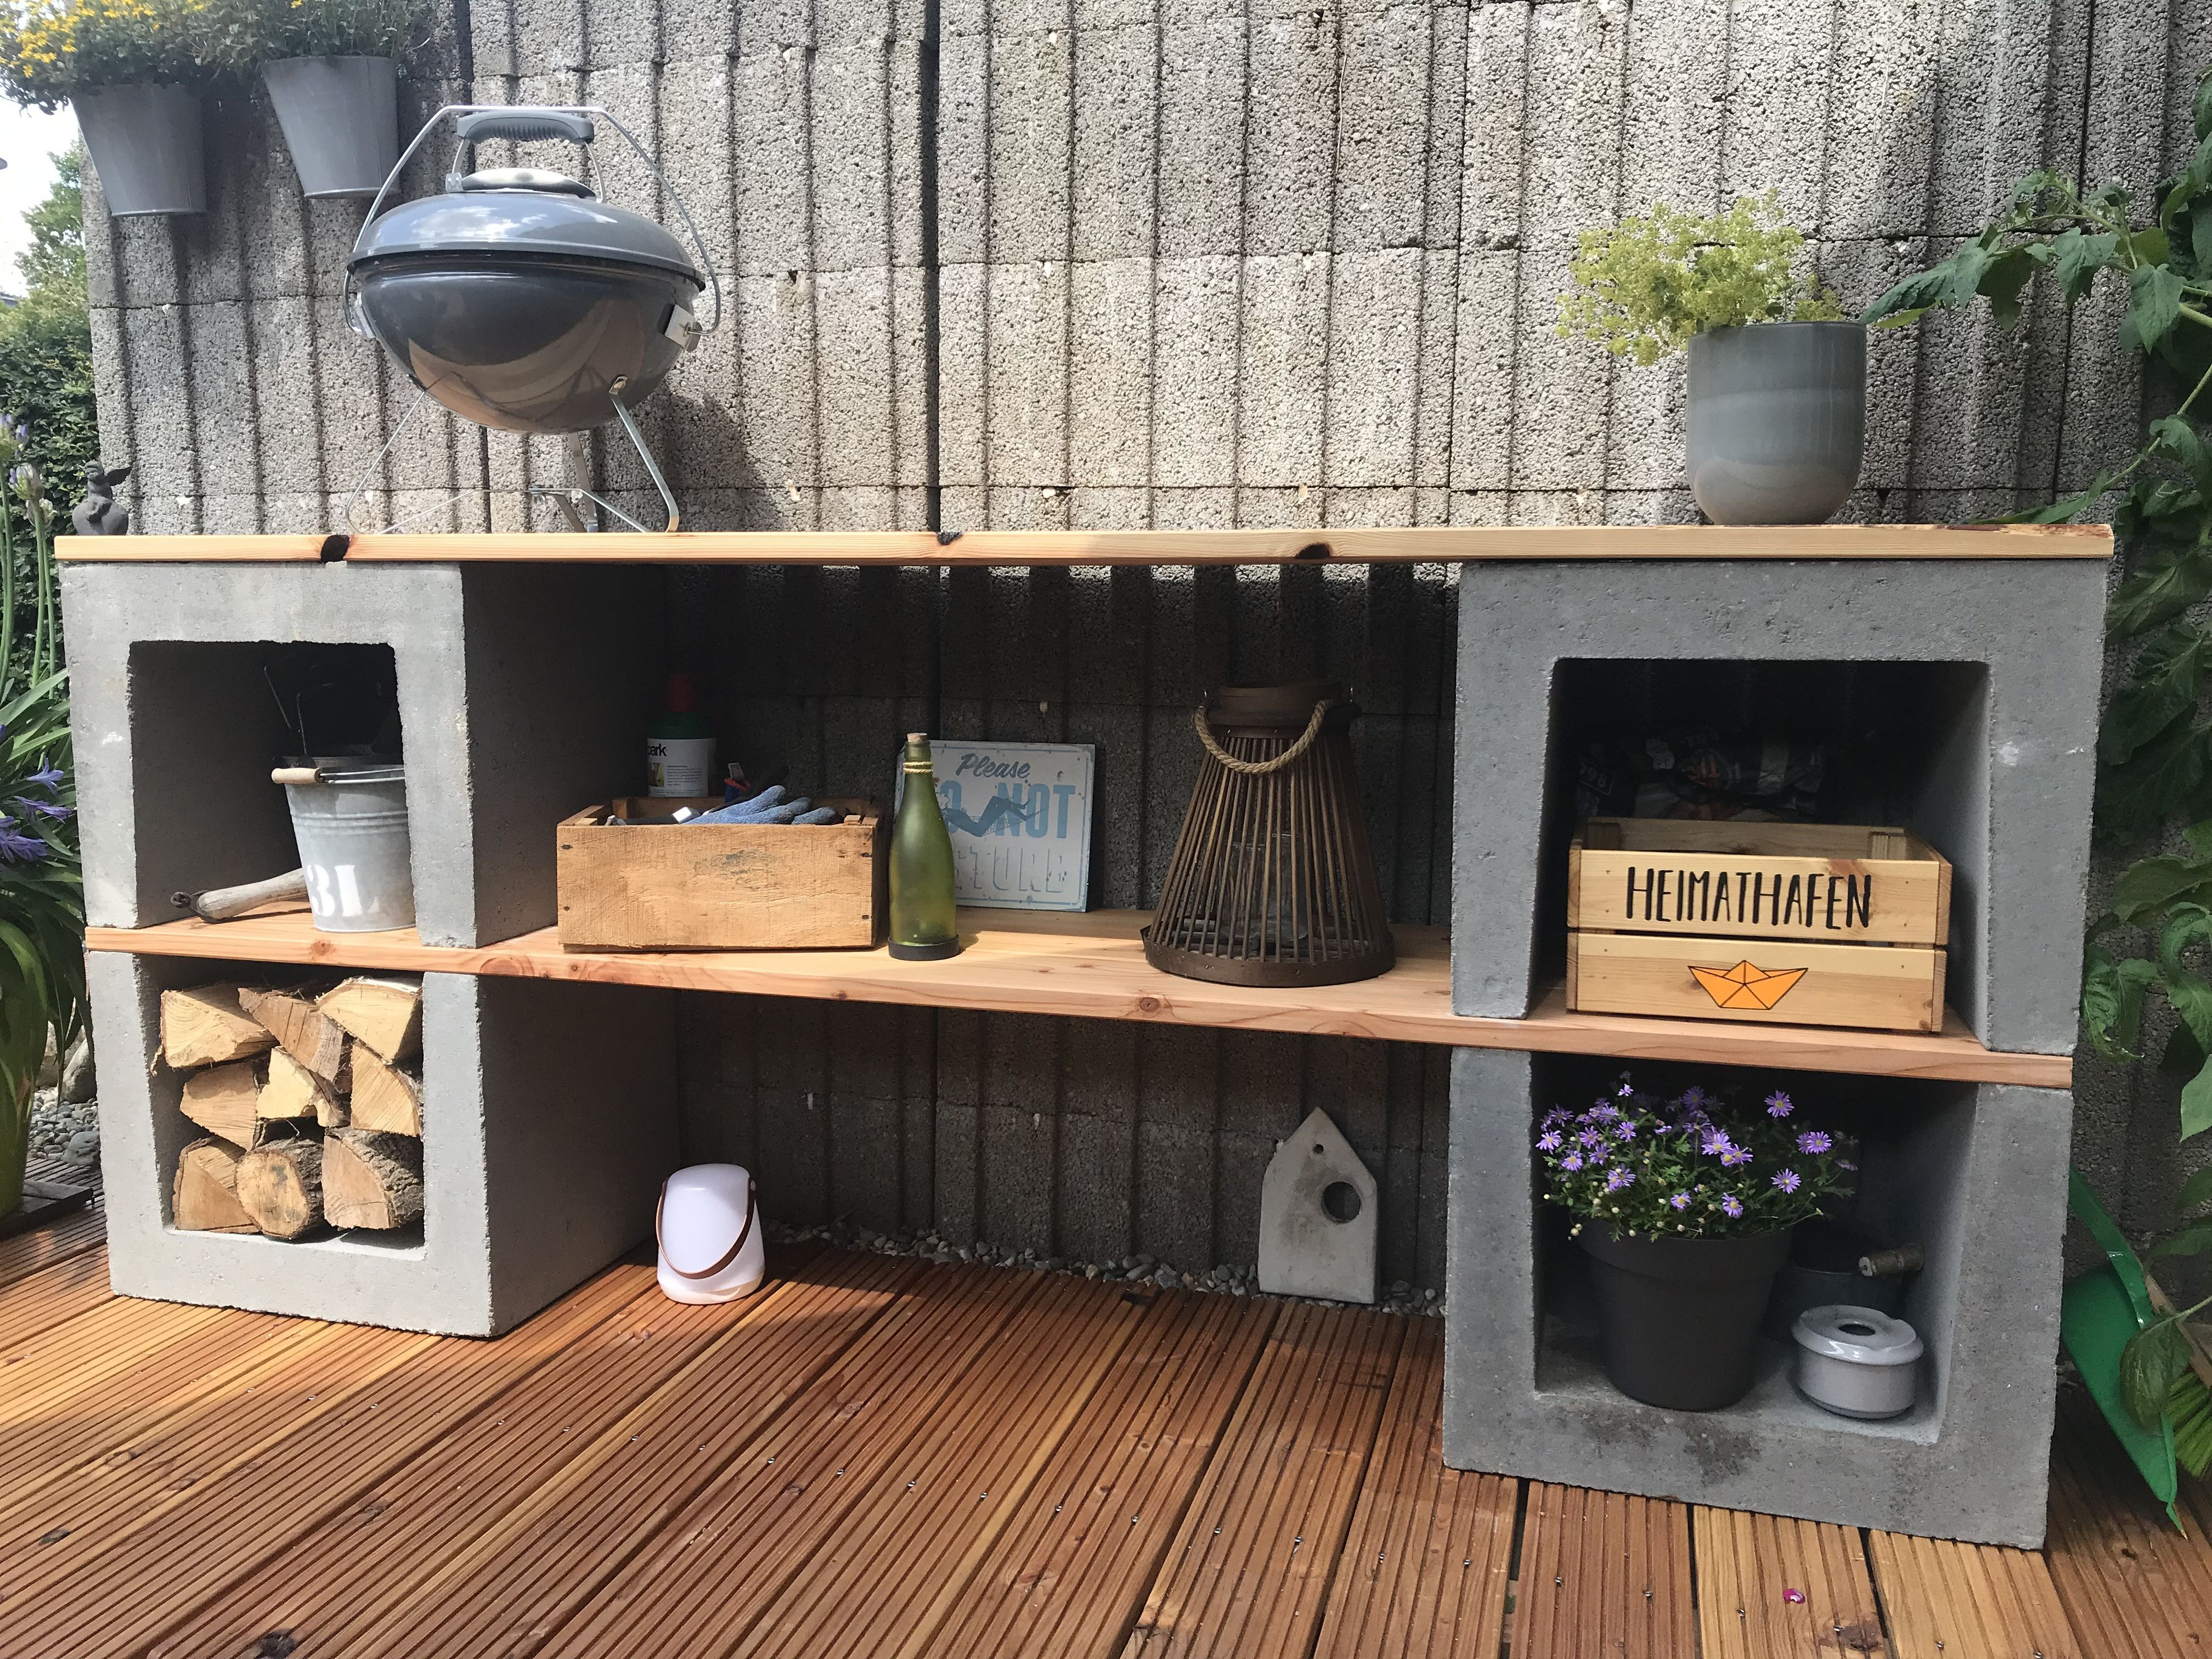 TV GARDEN DESIGN AT TV2 - Therese Knutsen - Welcome to Blog